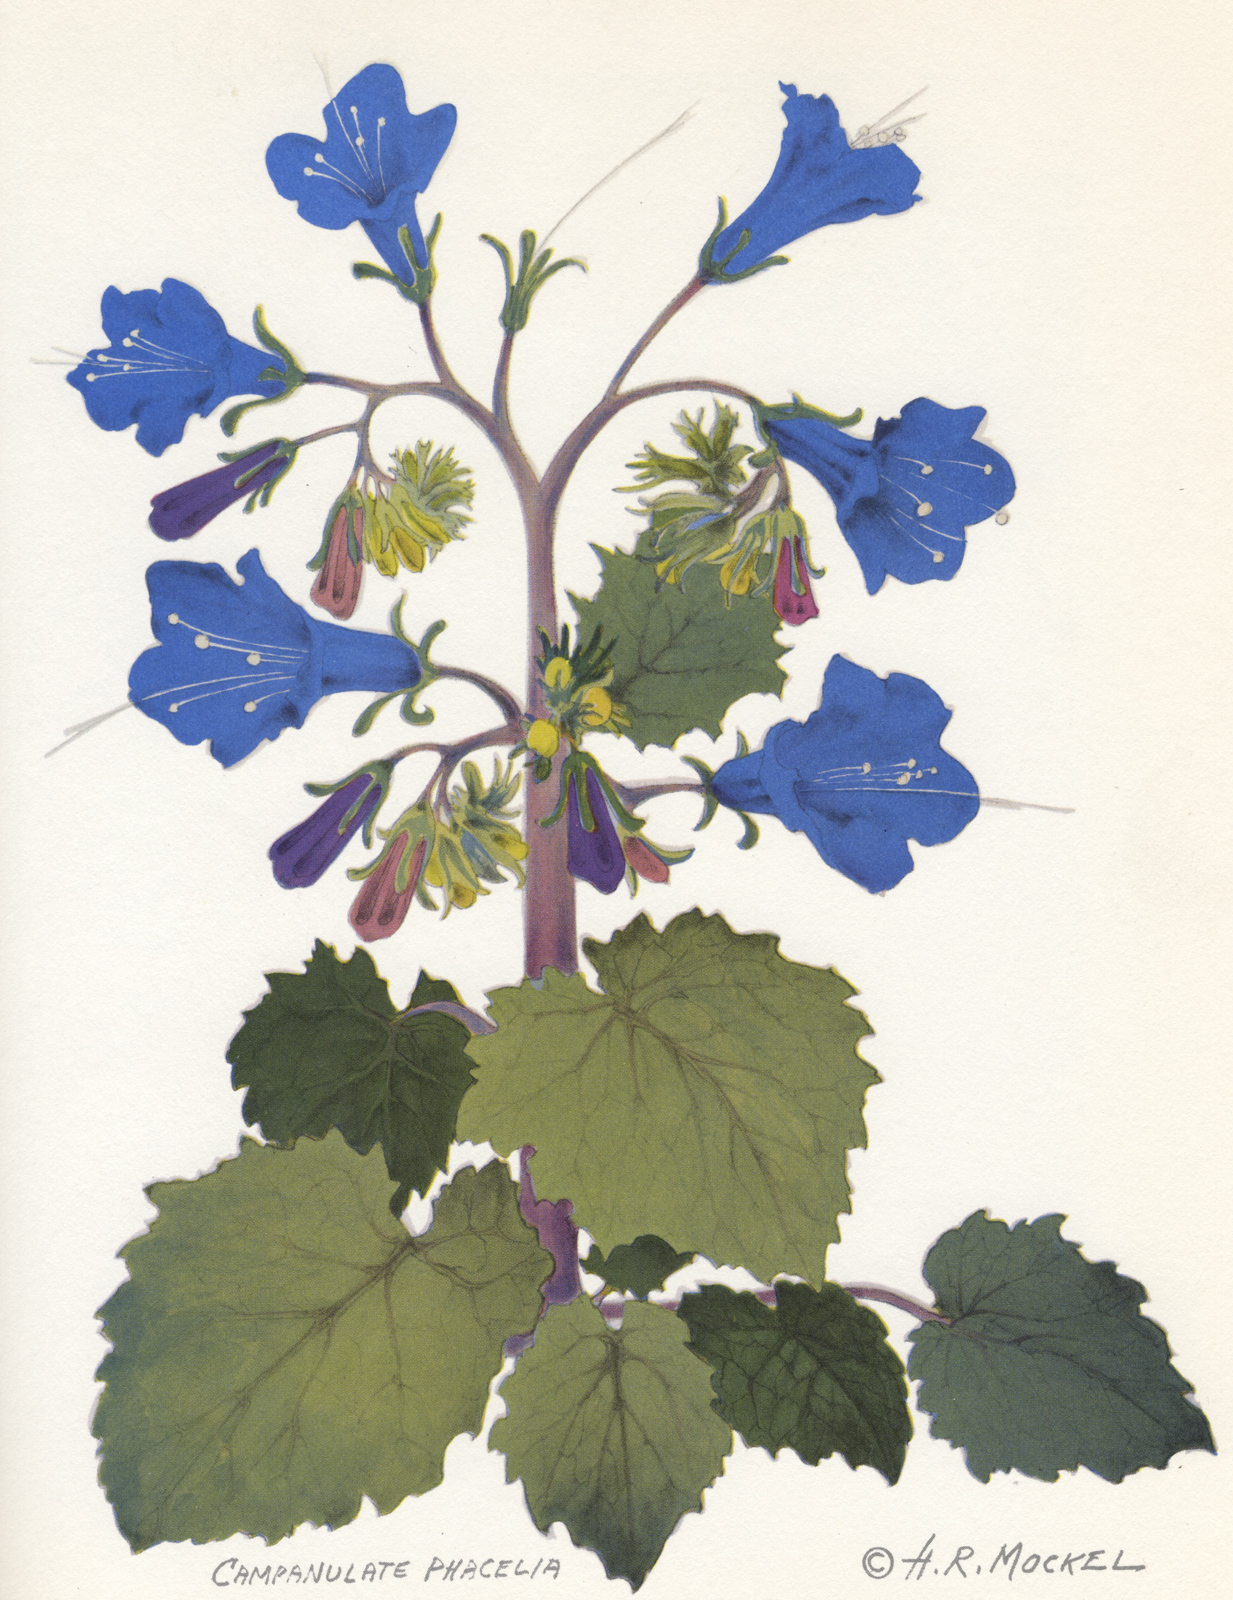 Henry Mockel, Campanulate Phacelia, Hot Air From the Desert